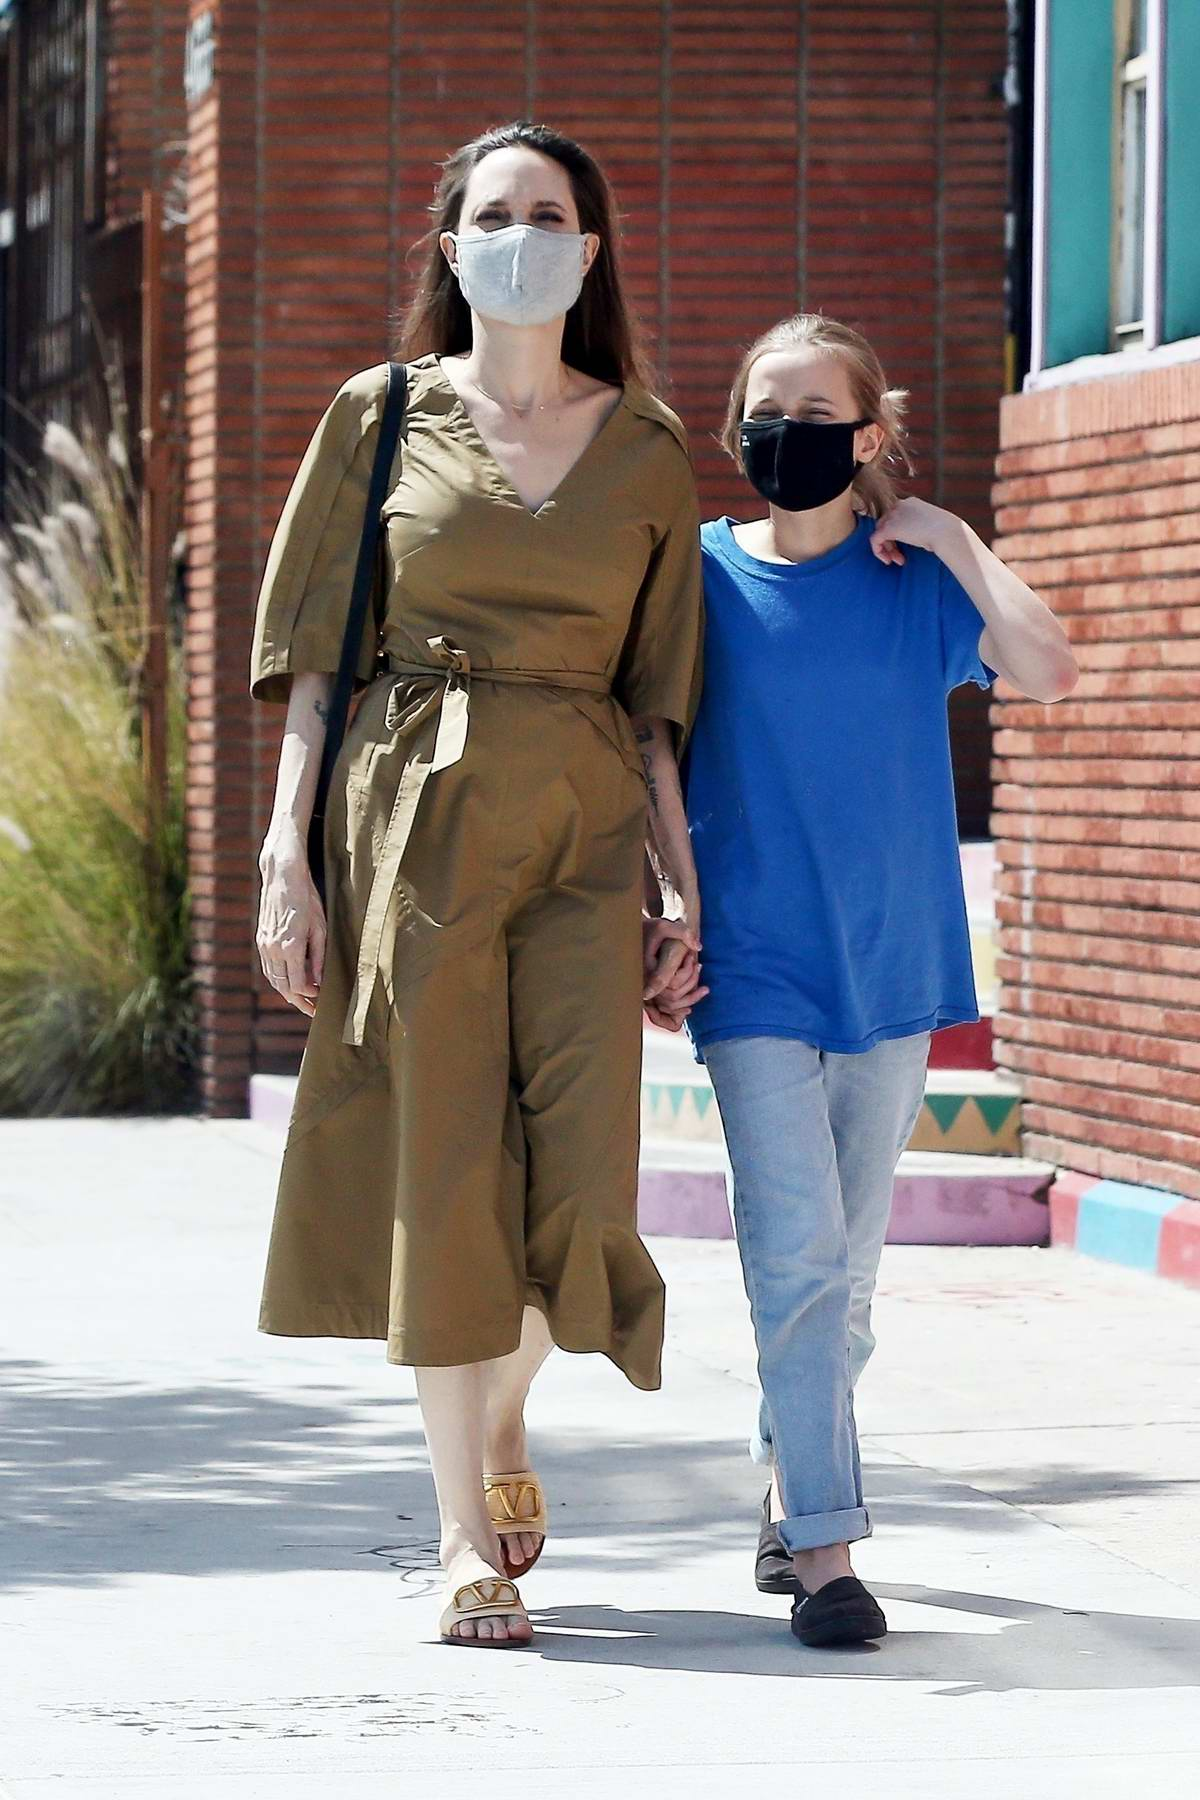 Angelina Jolie stops at Soap Plant Wacko while out shopping with her daughter Vivienne in Los Angeles